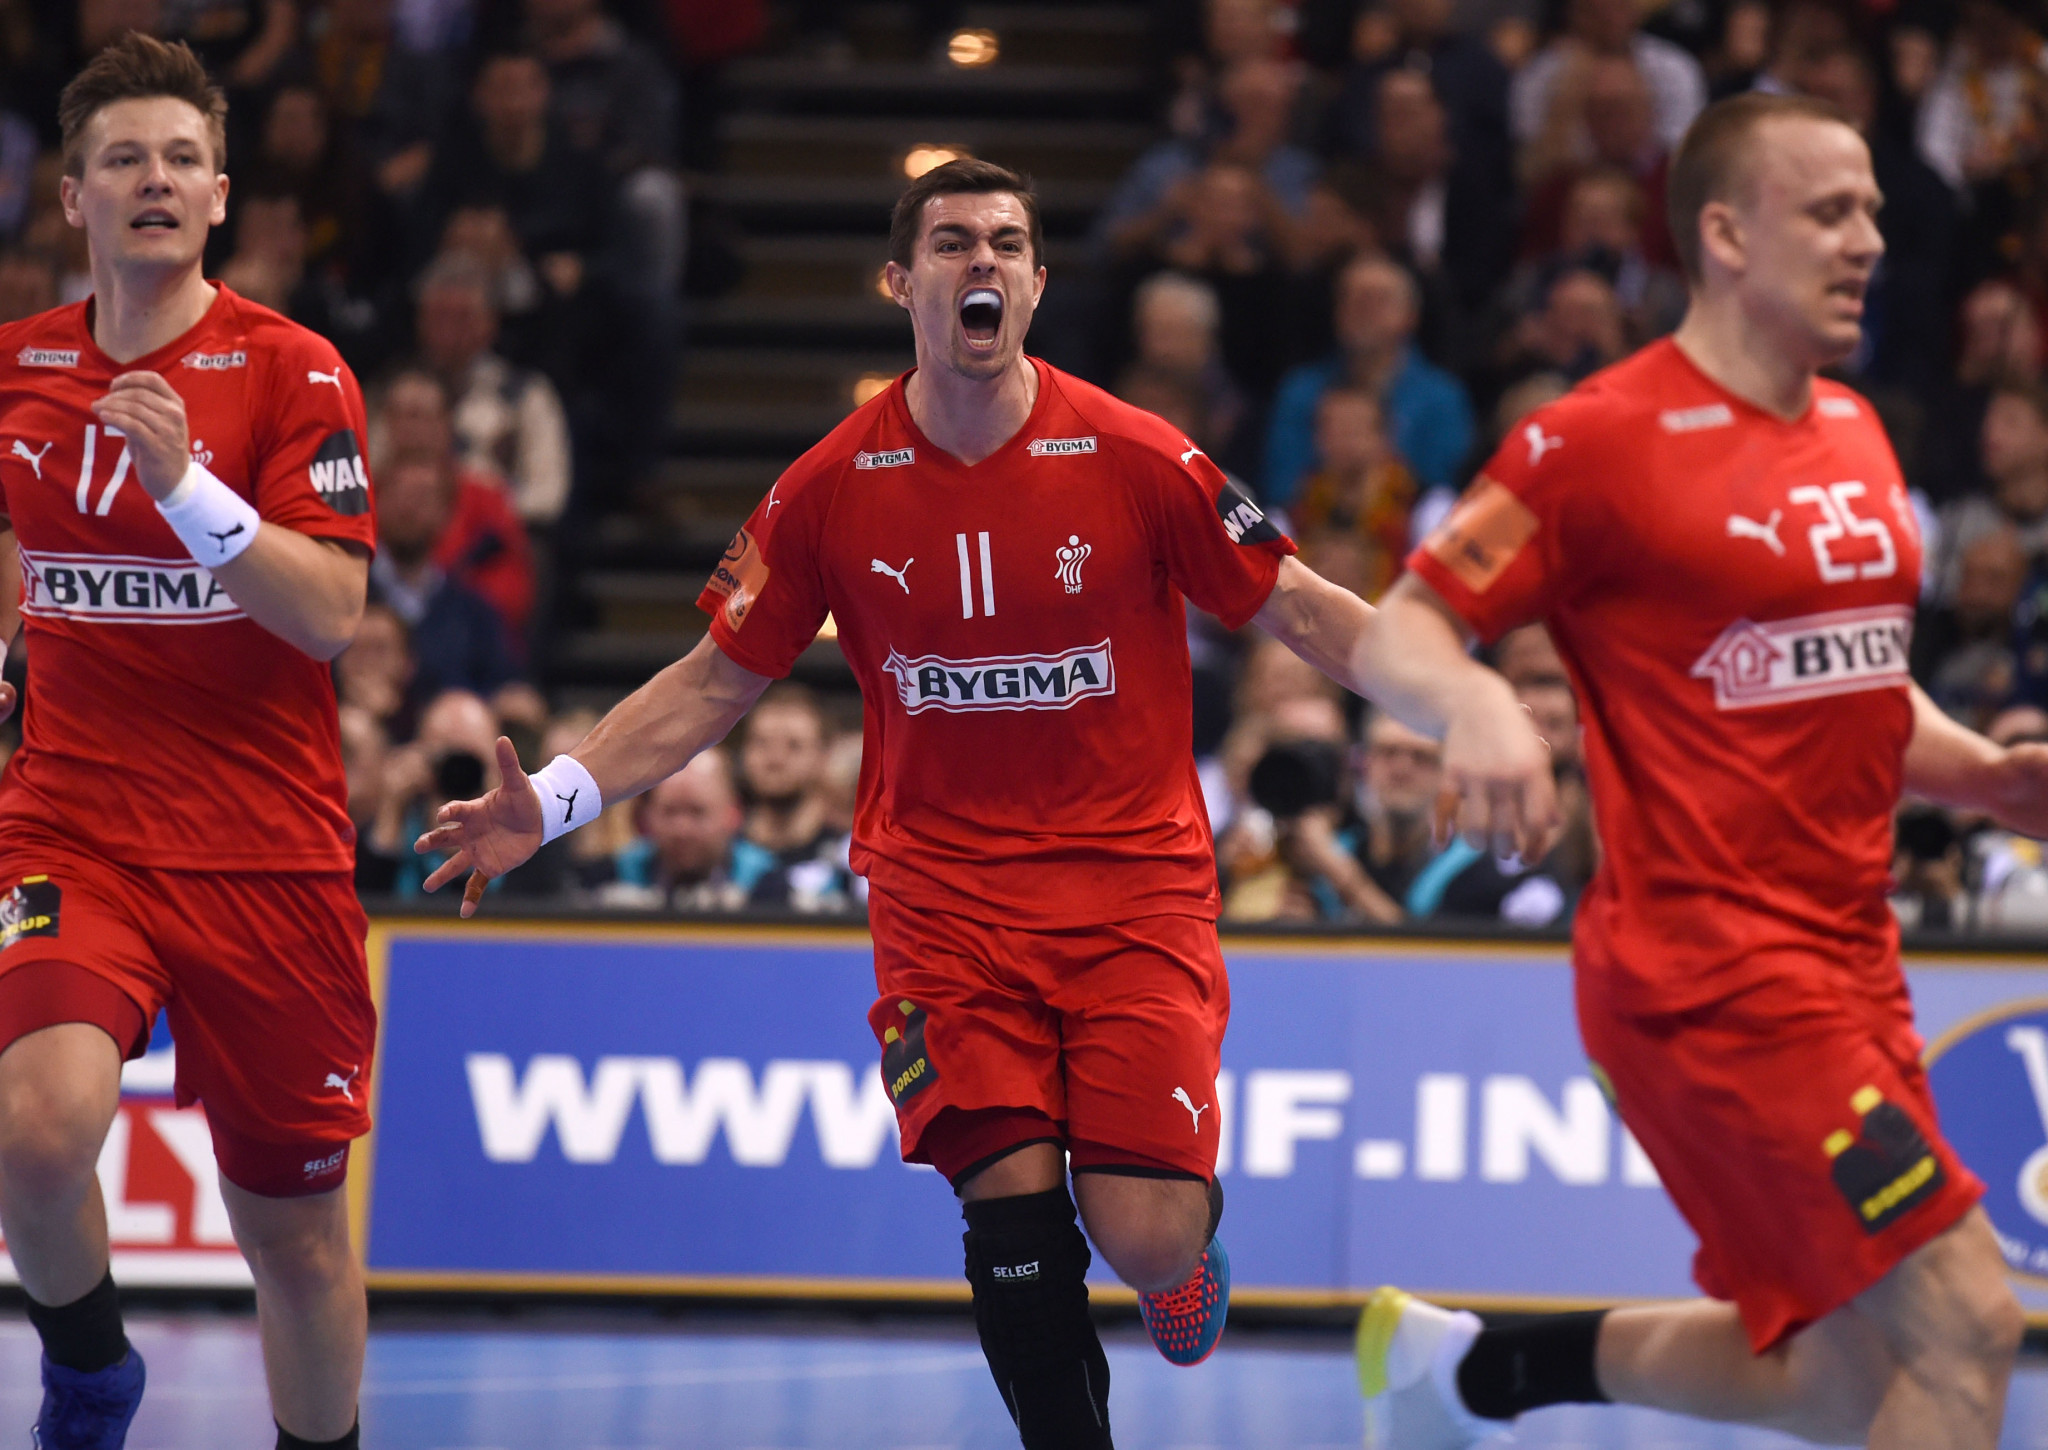 Hosts Denmark knock defending champions France out of IHF Men's Handball World Championship